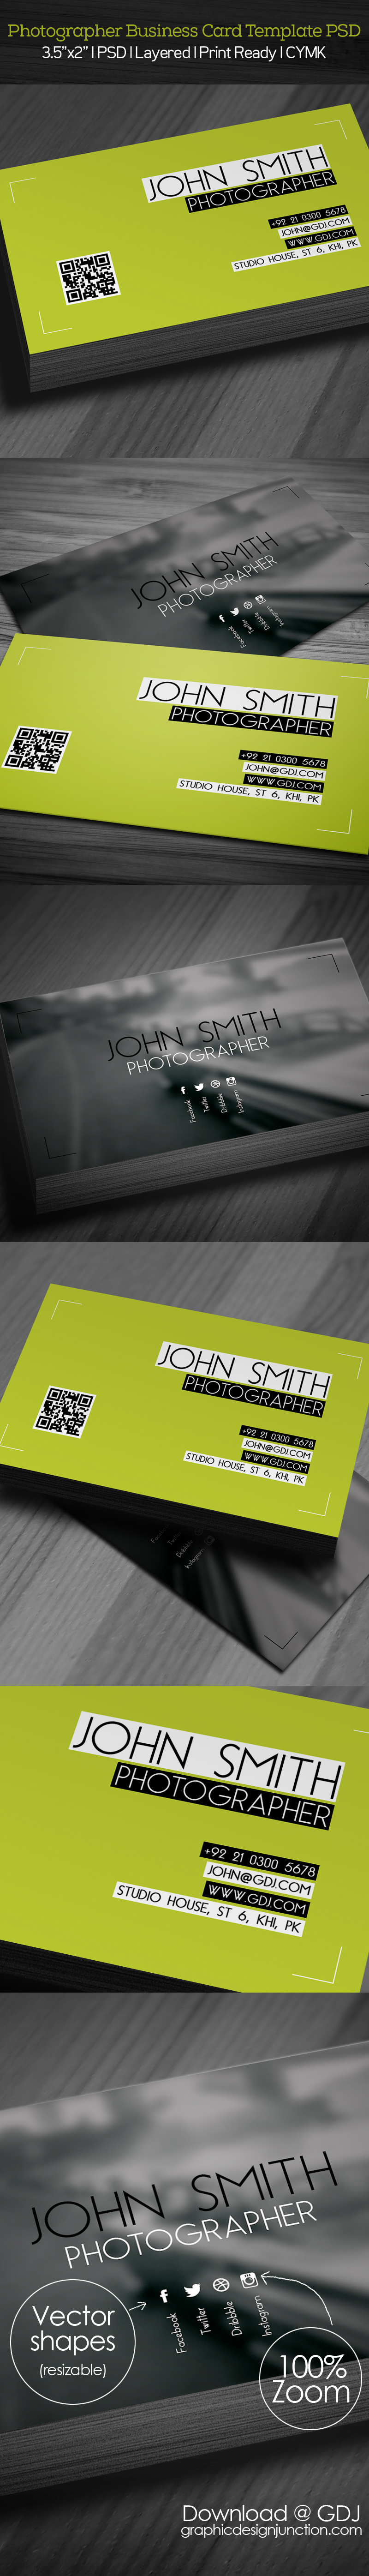 free photographer business card psd template freebies